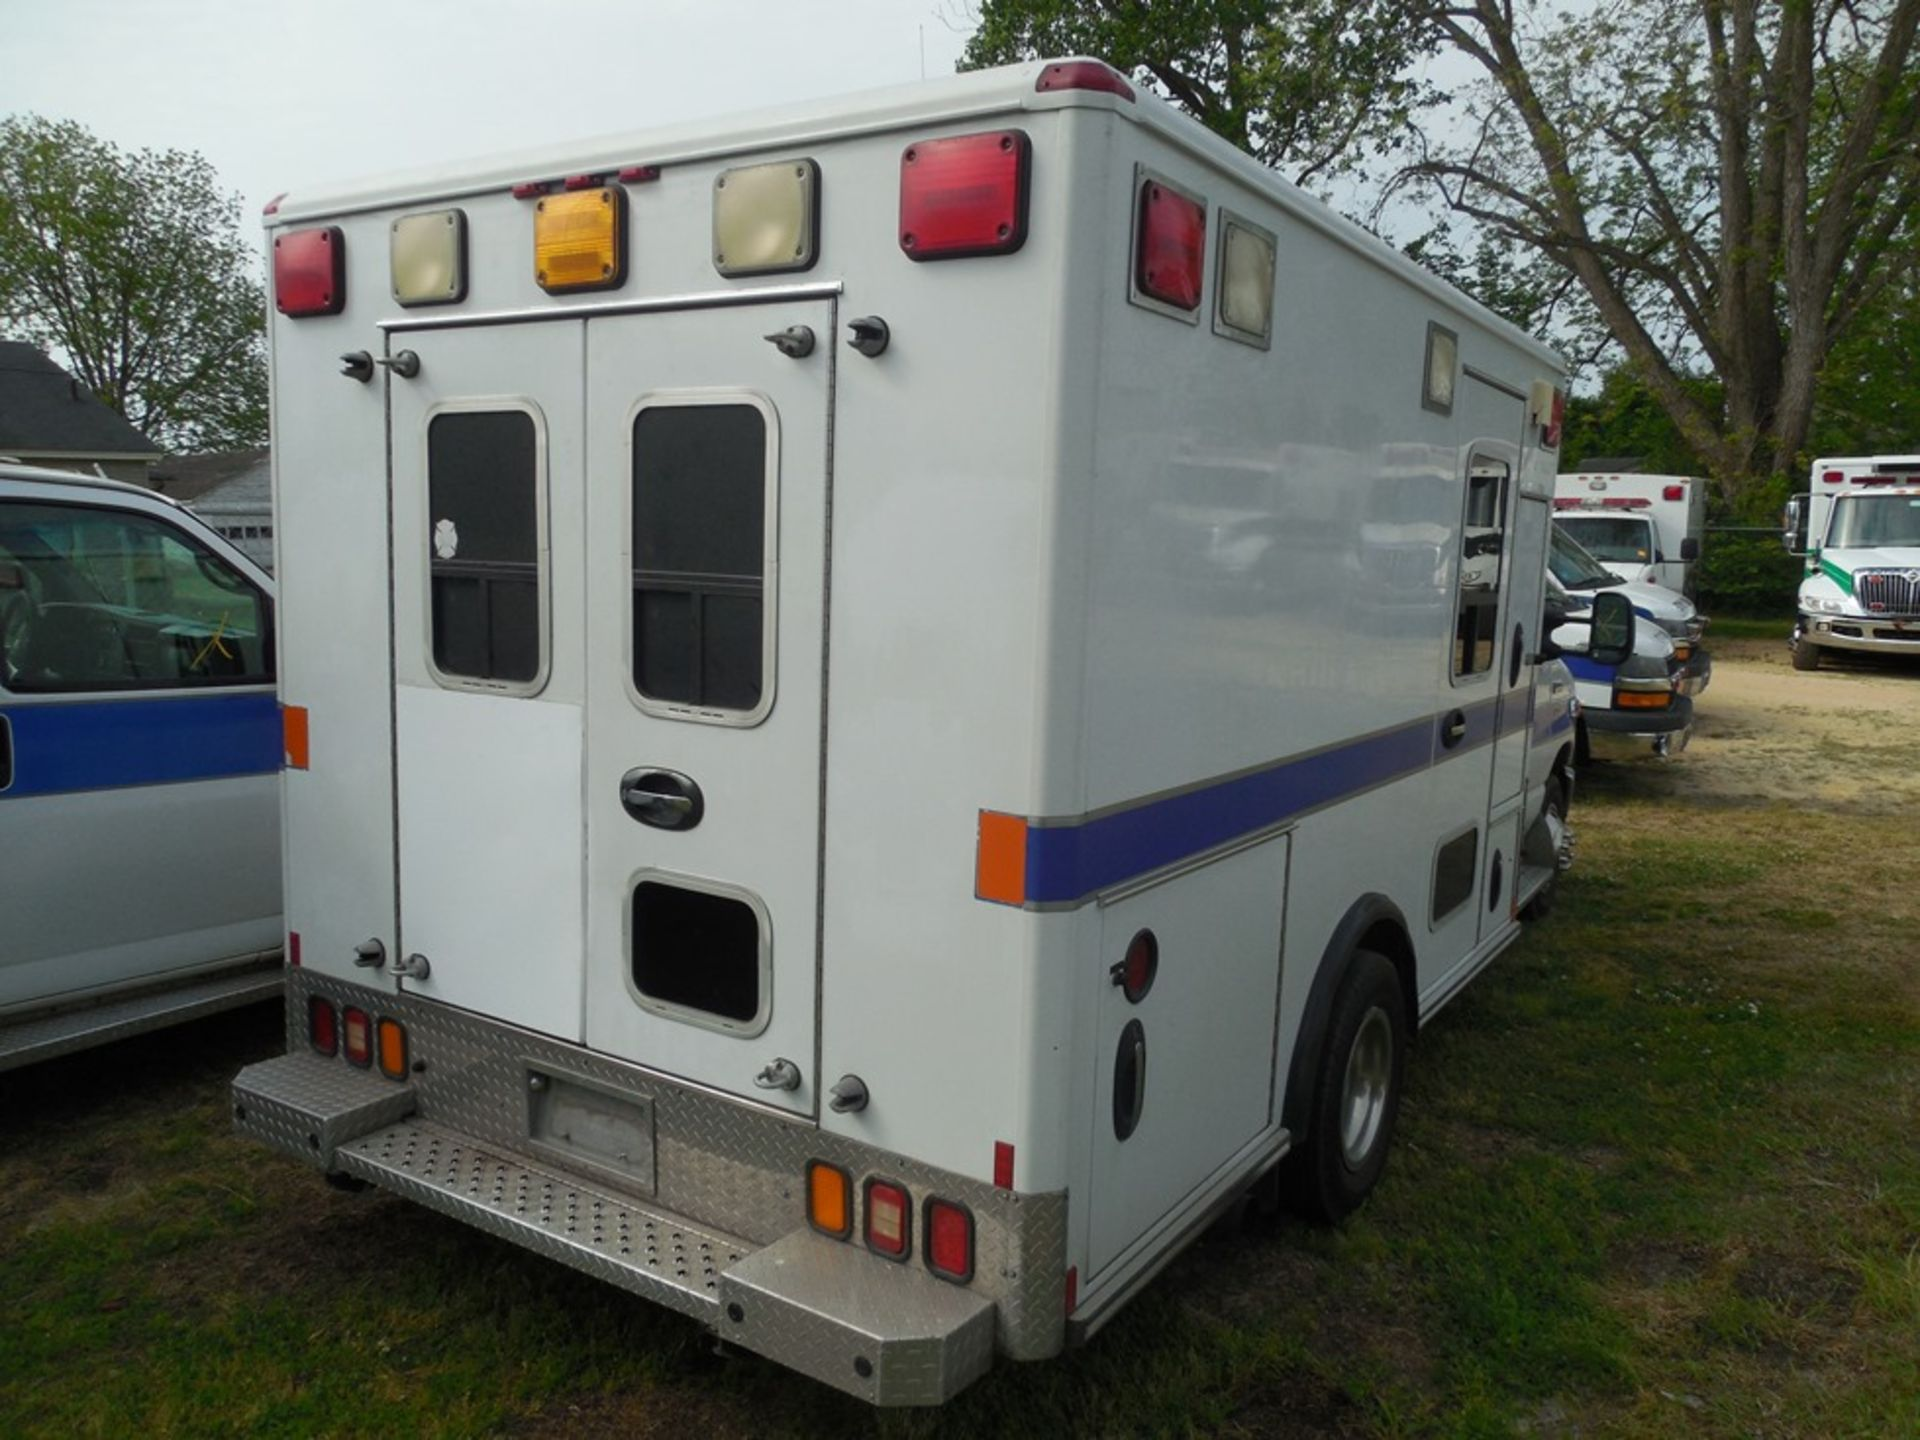 2010 Ford E350 Wheel Coach ambulance, dsl, 61,572 miles, vin# 1FDWE3FP2ADA14523 - Image 6 of 8